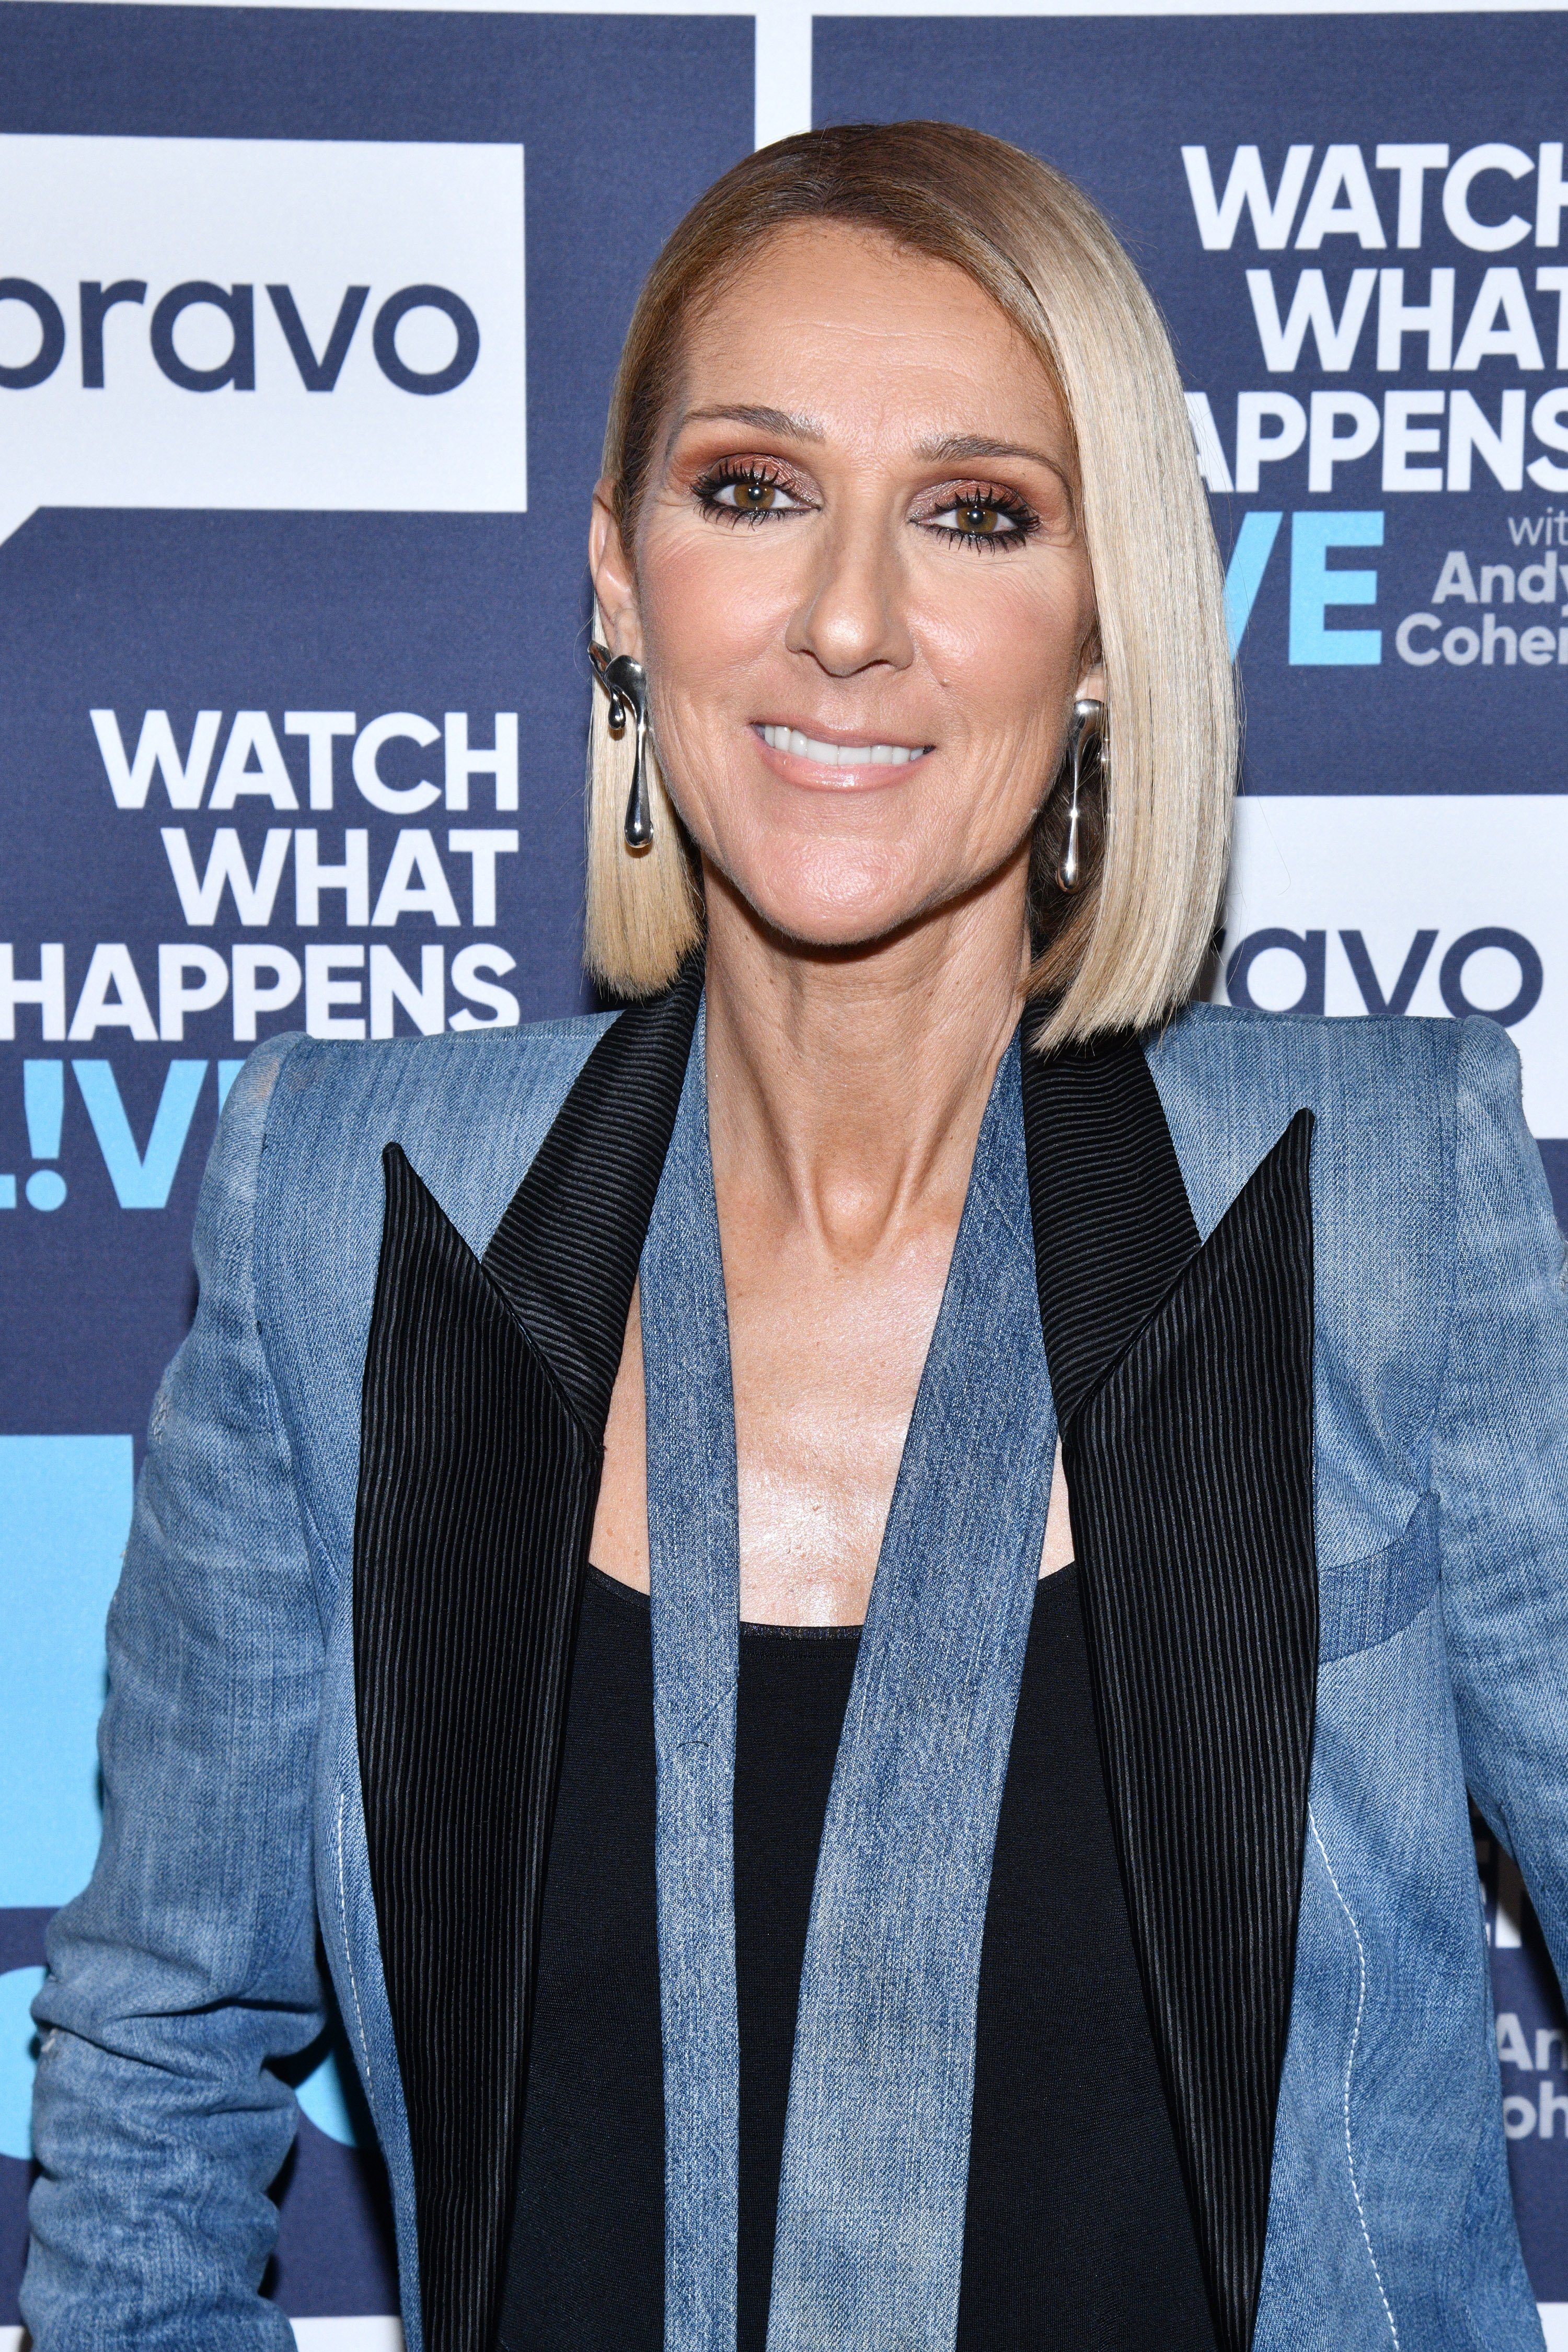 """Celine Dion appears on """"Watch What Happens Live"""" with Andy Cohen 